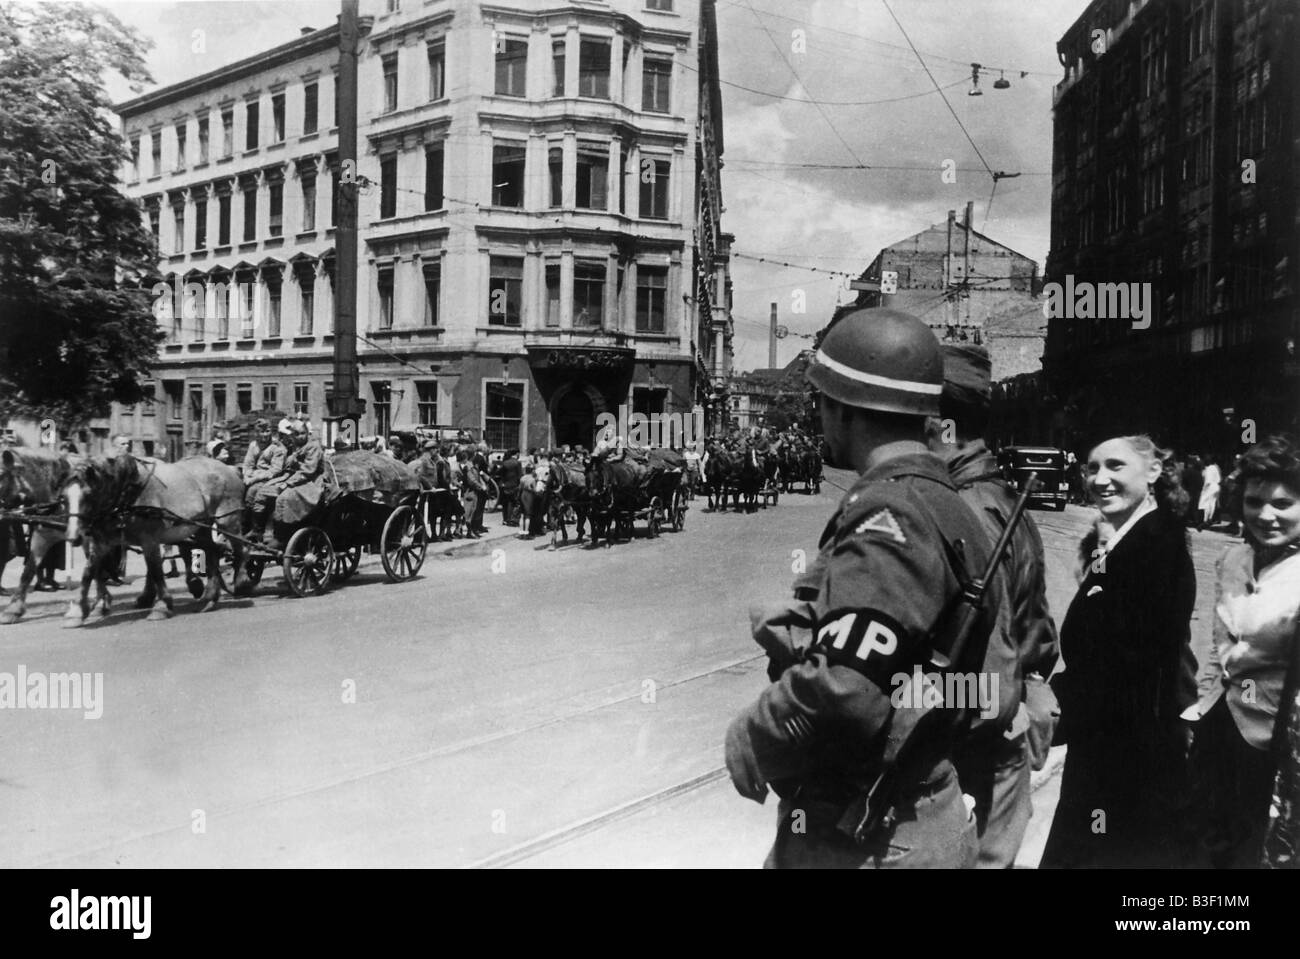 Entry of Soviet Troops into Leipzig 1945 - Stock Image